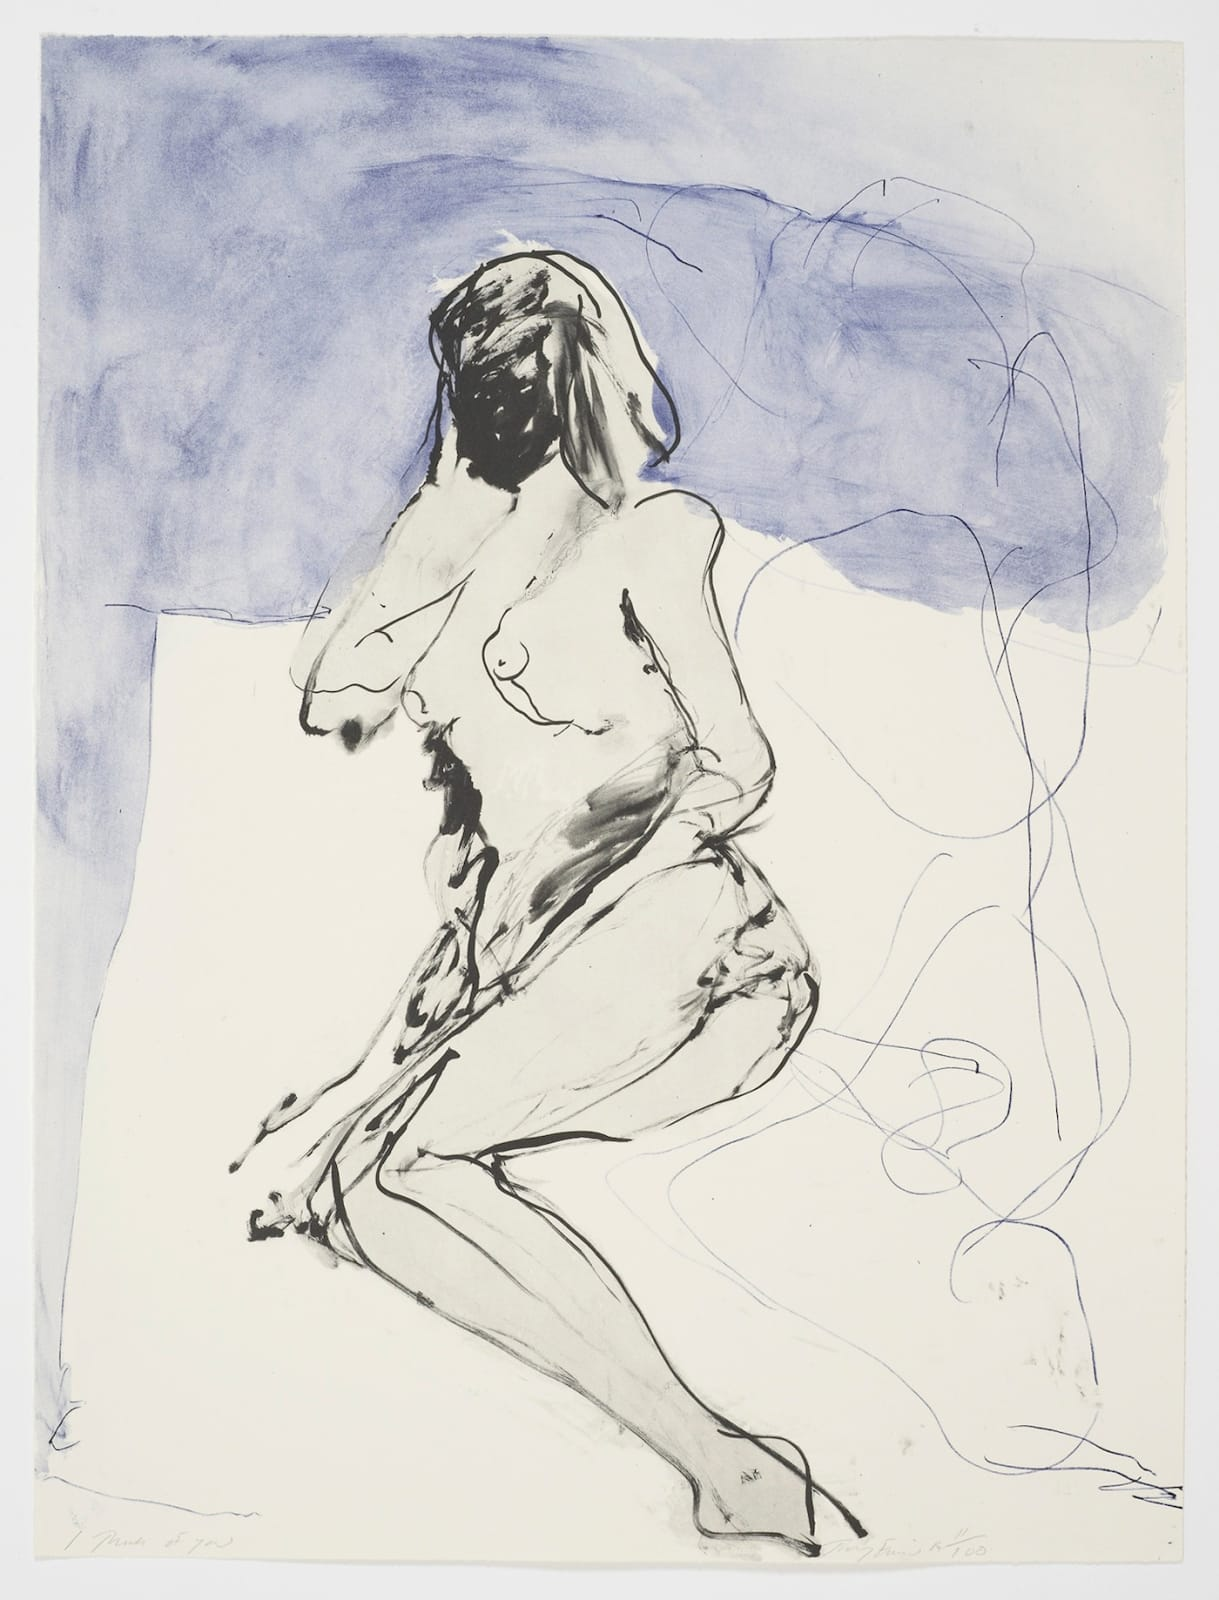 Tracey Emin I Think of You, 2014 Lithographic print in 2 colours on Somerset 300 gsm paper Hand-signed, numbered and dated by the artist. Edition Number 66 of 100